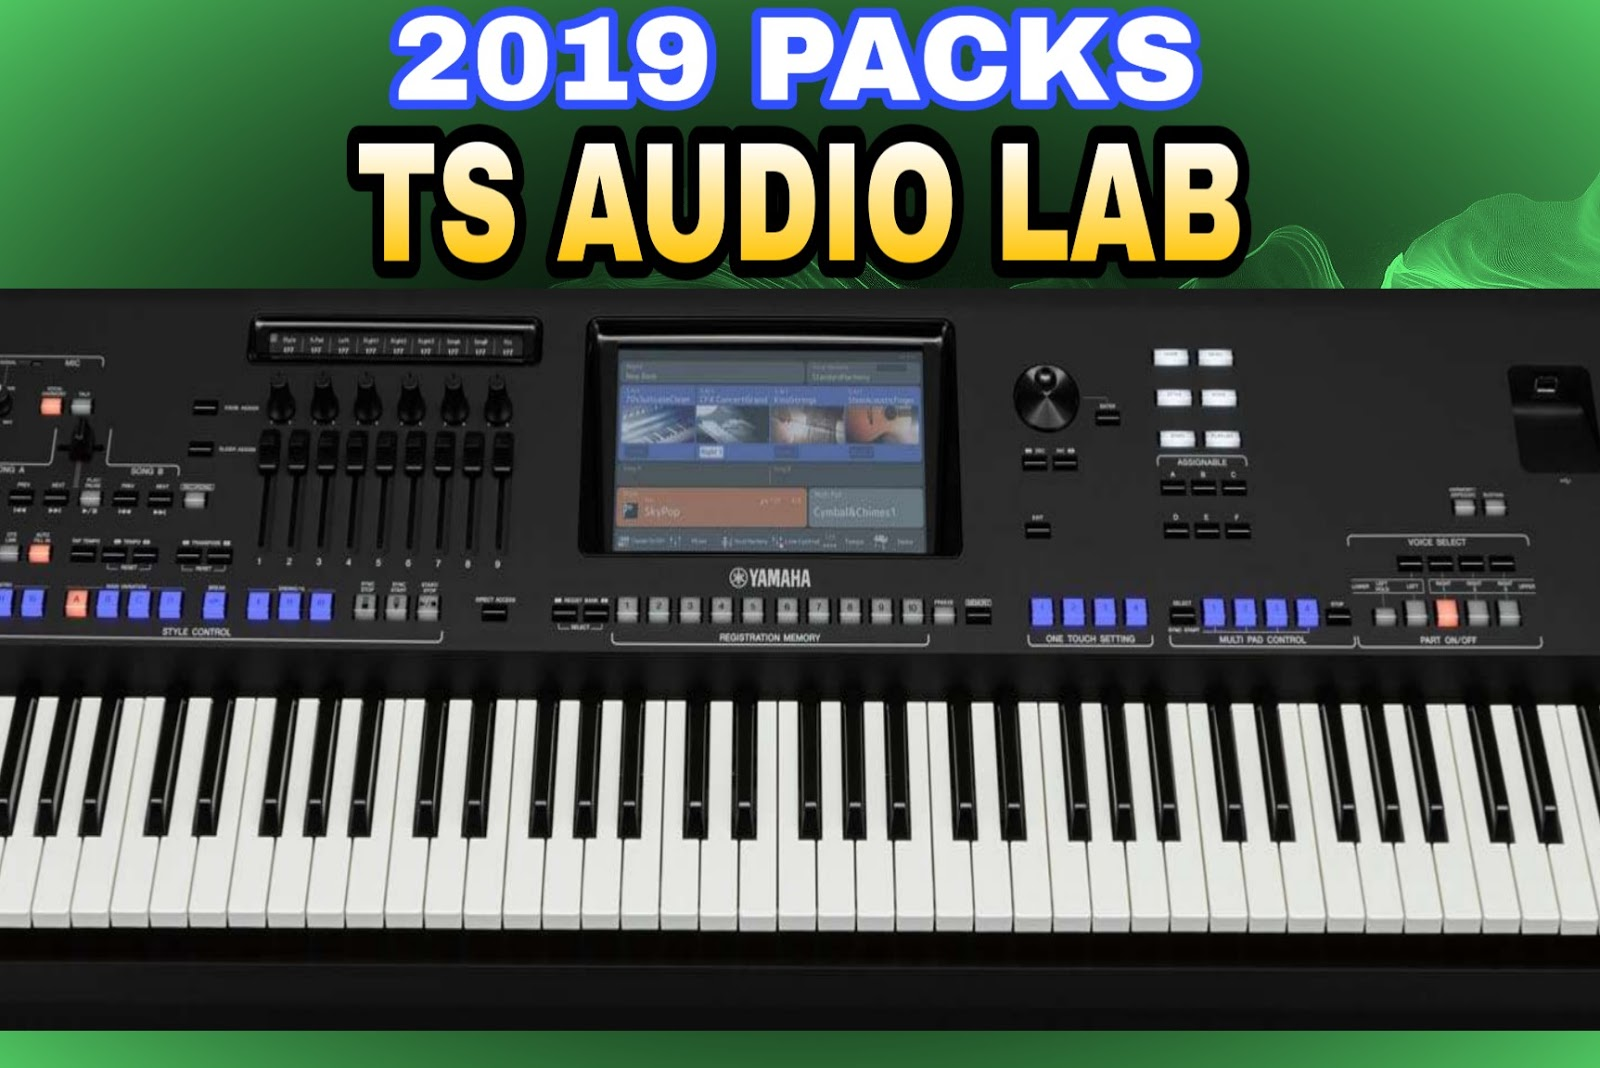 TS Audio Lab Yamaha Keyboard Styles Beats for Sinhala Tamil Hindi